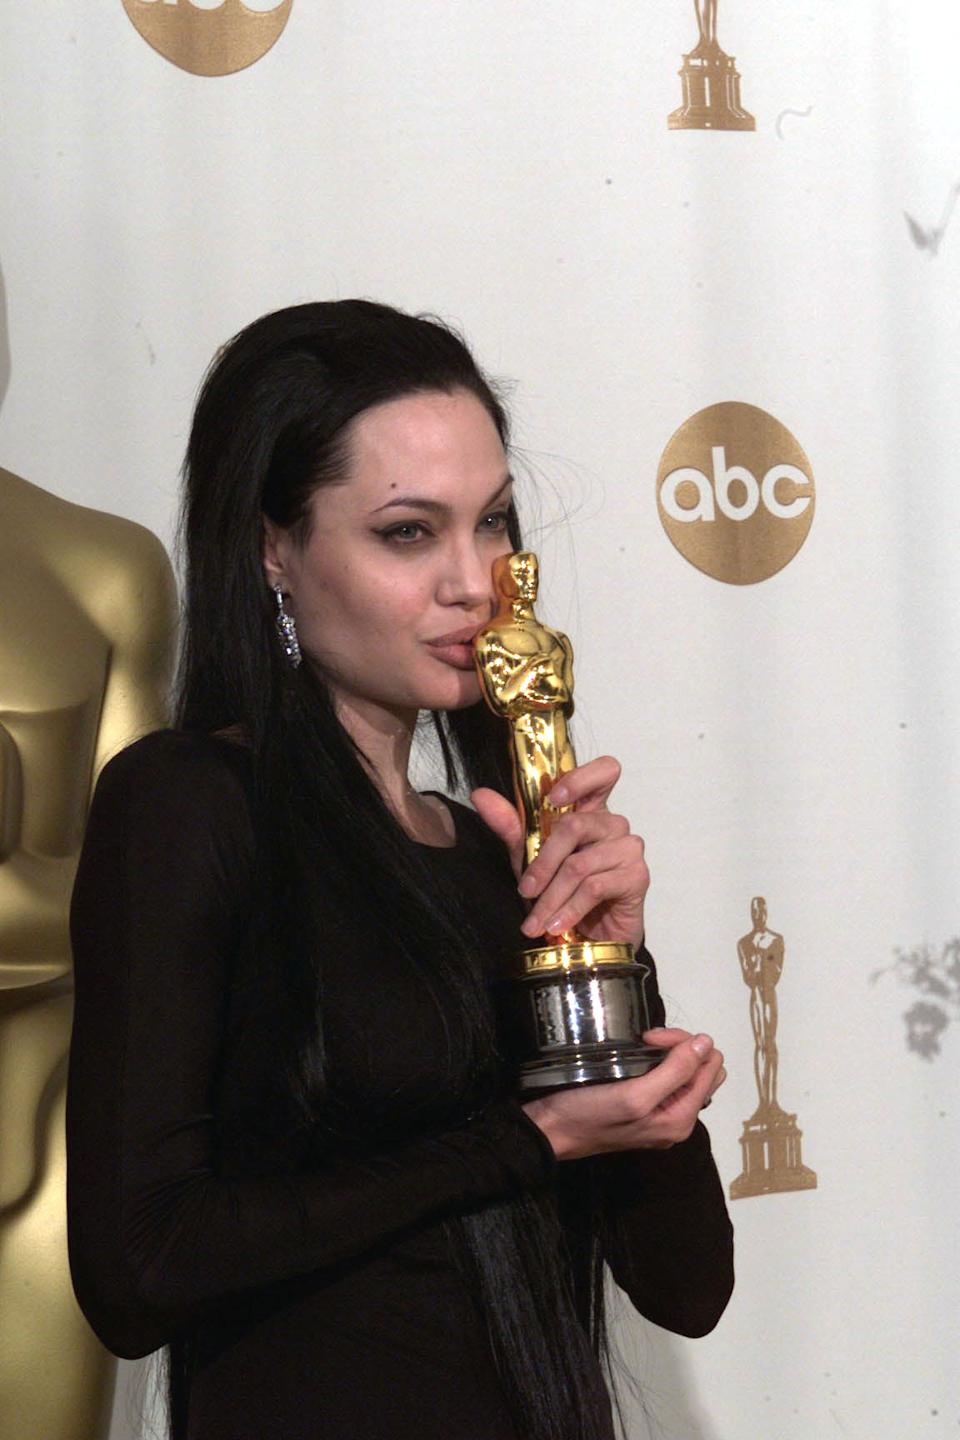 Coverage of the 72nd Annual Academy Awards Ceremony held at the Shrine Auditorium in Los Angeles on March 26, 2000. Best Support Actress Angelina Jolie,